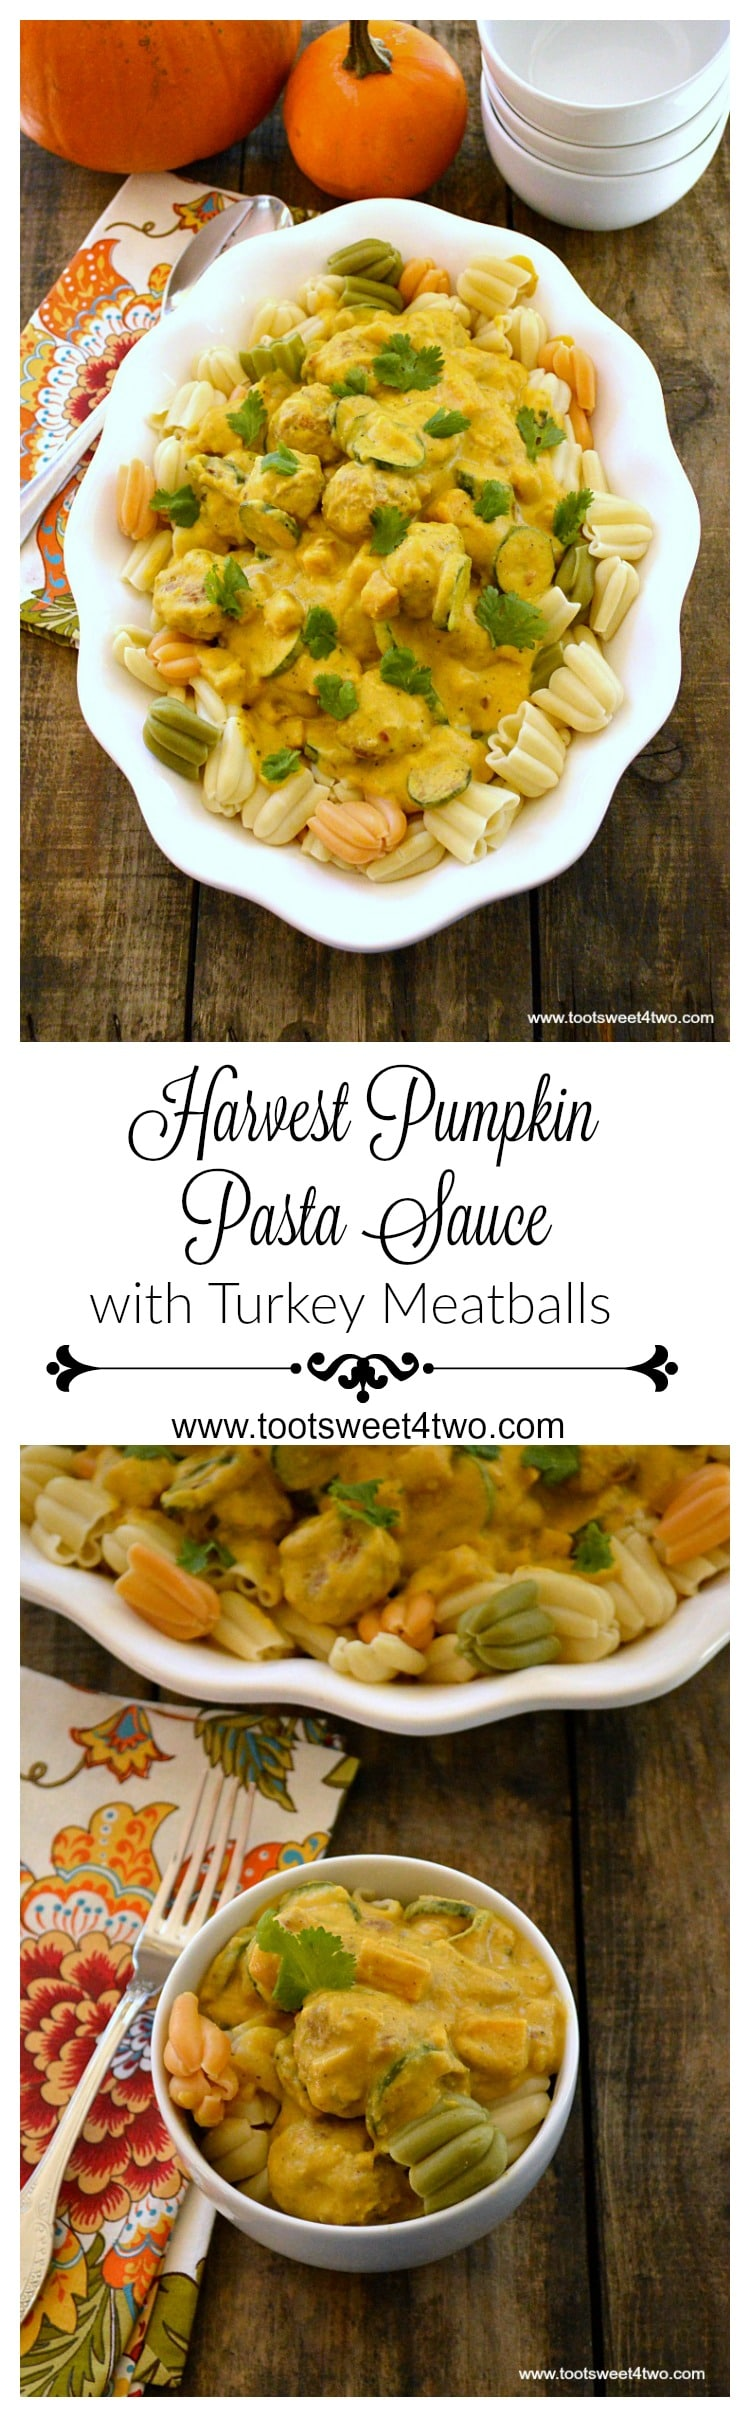 Harvest Pumpkin Pasta Sauce with Turkey Meatballs